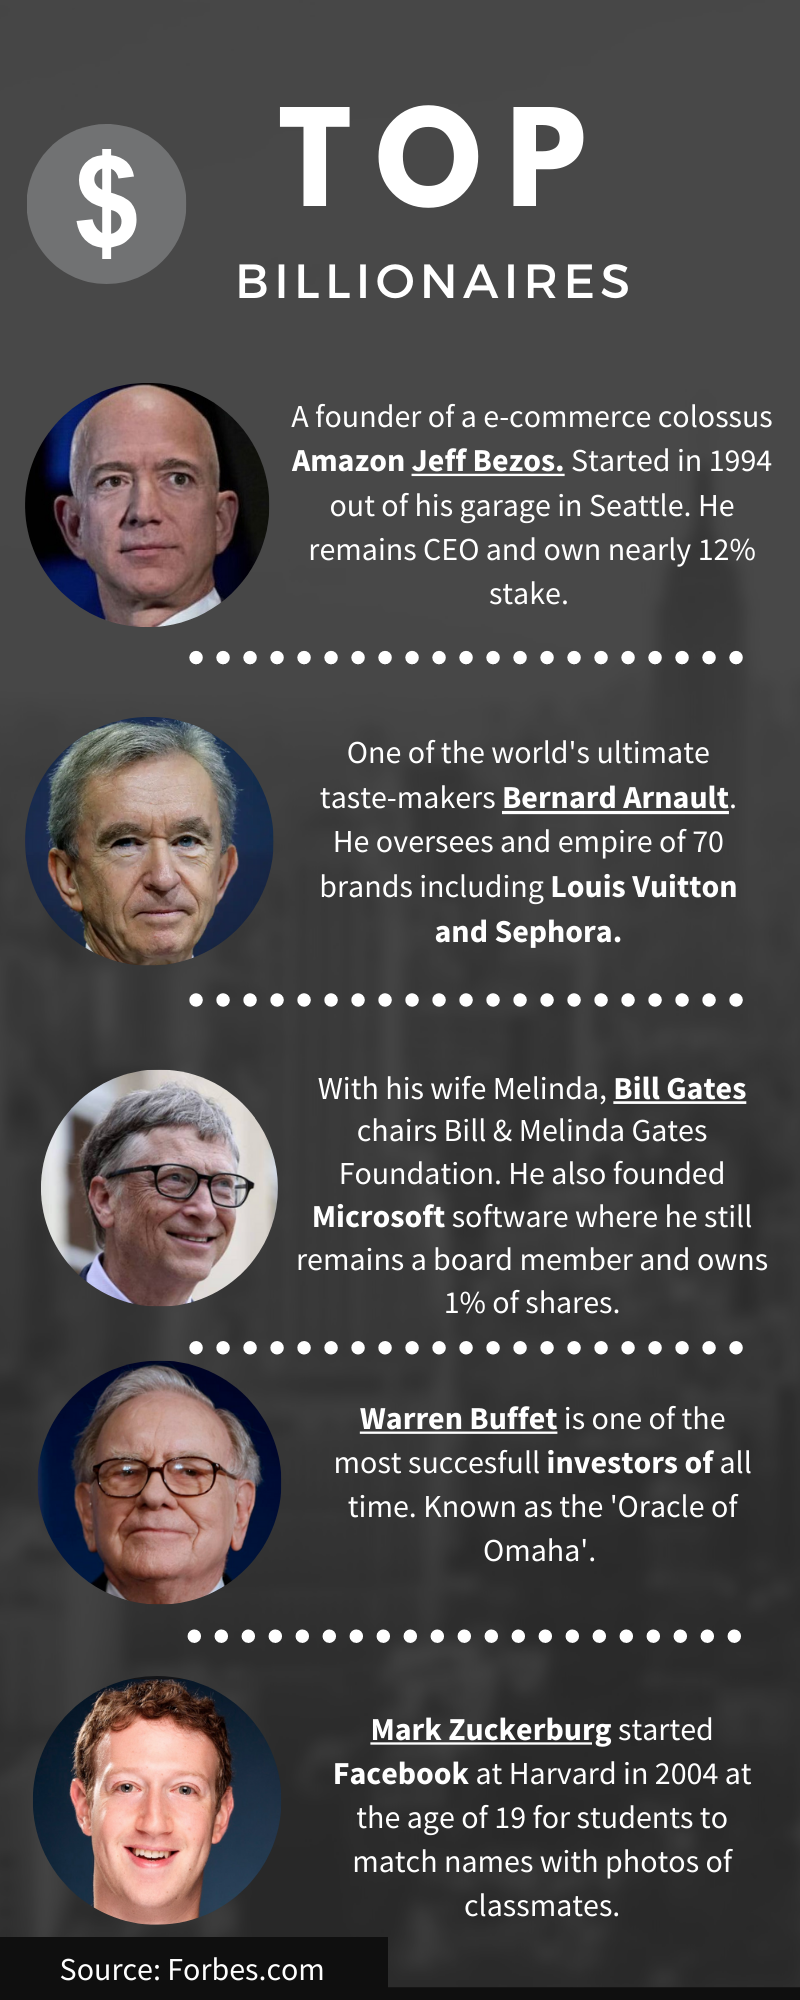 The list of the top billionaires